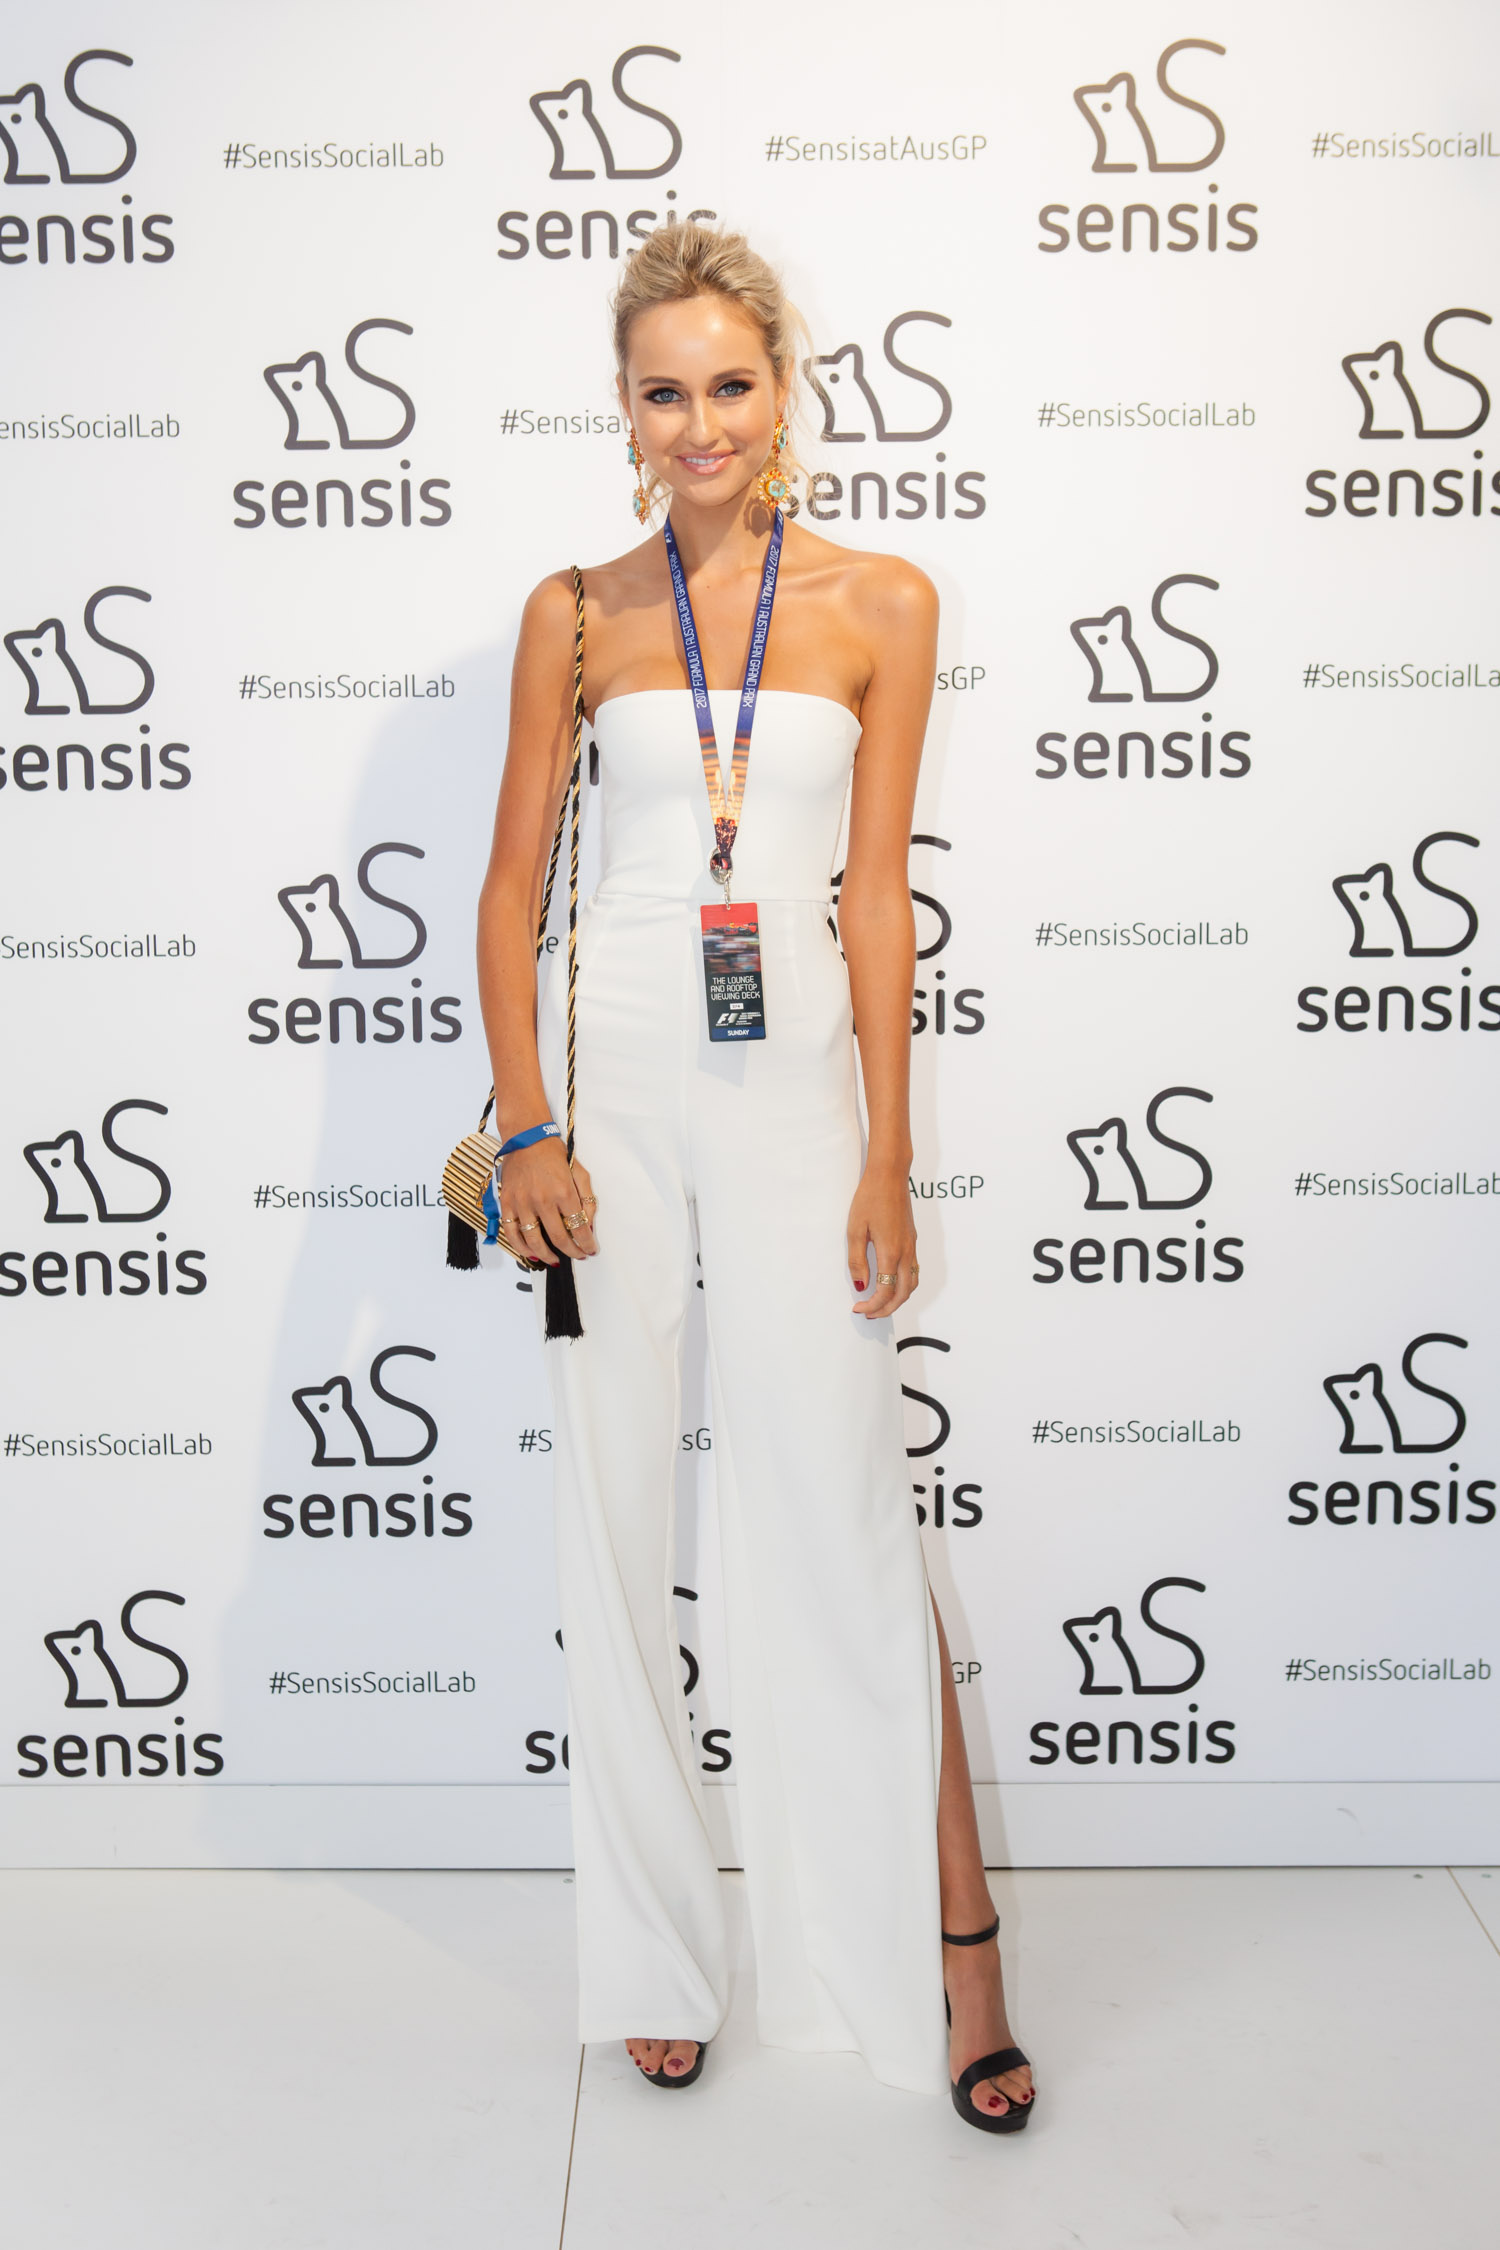 #sensissociallab #sensisatausgp Photo Credit: SDP Media